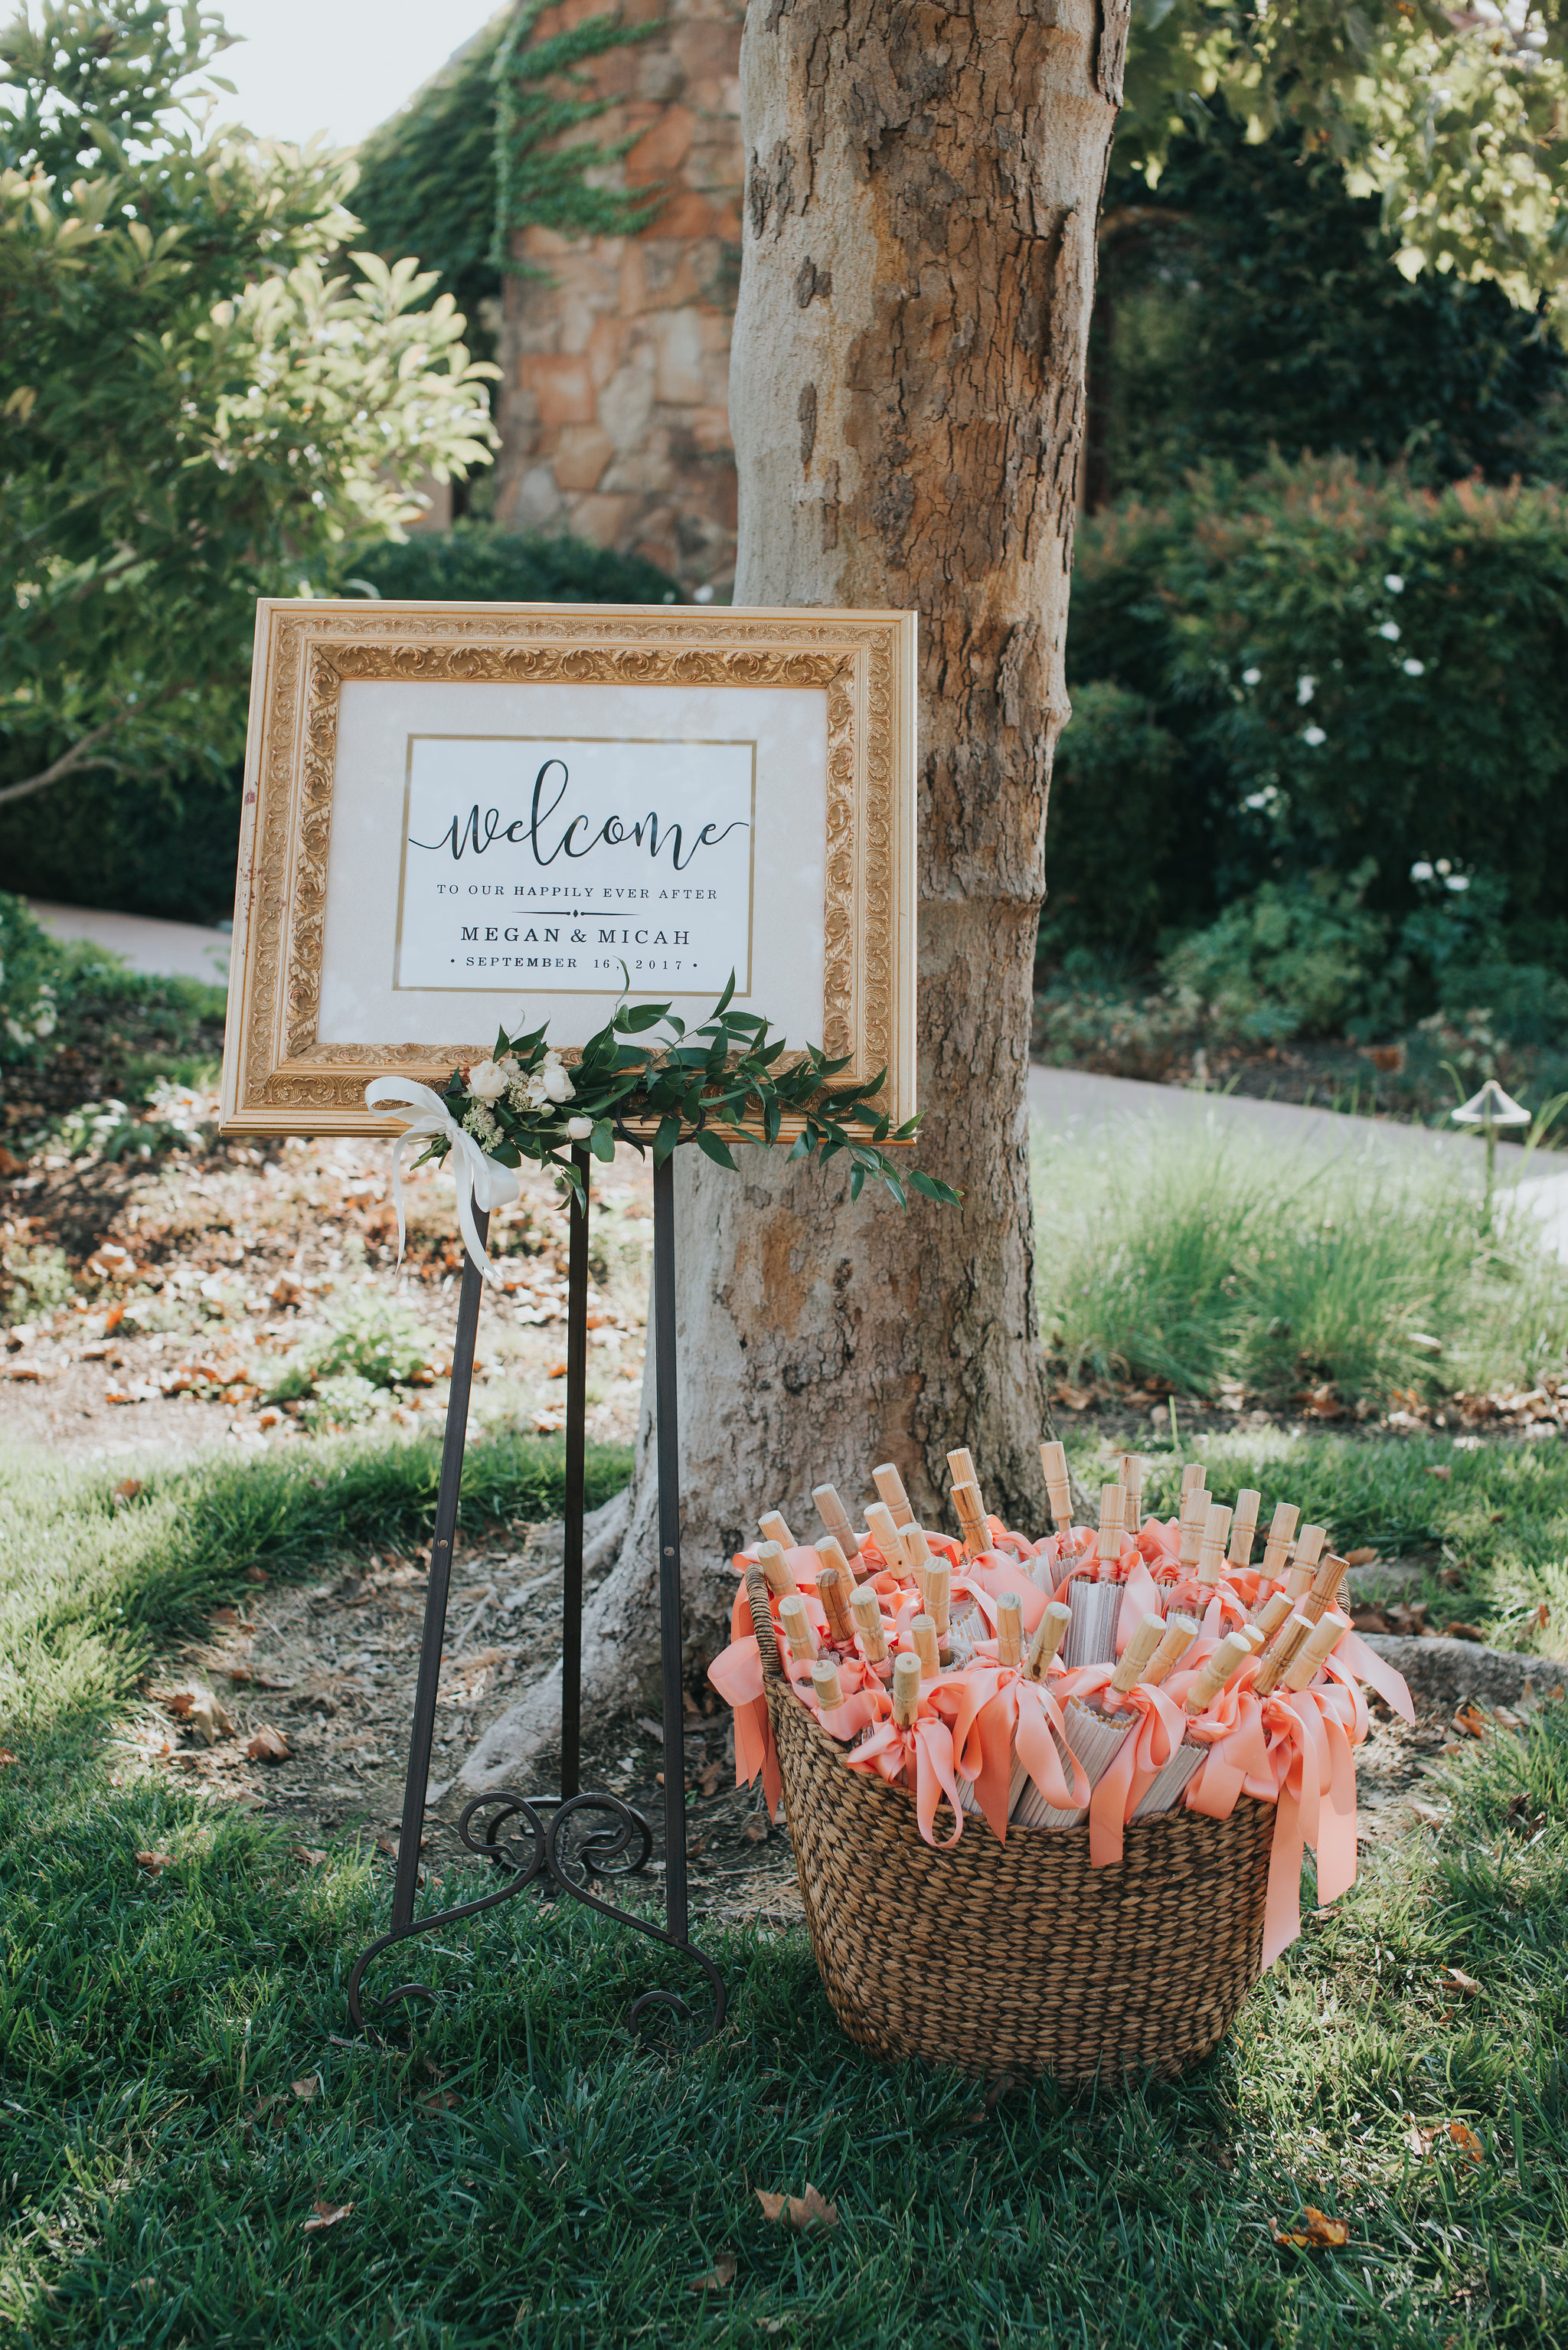 Vintners-Inn-Wedding-Vineyard-Welcome-Sign-Ceremony.jpg